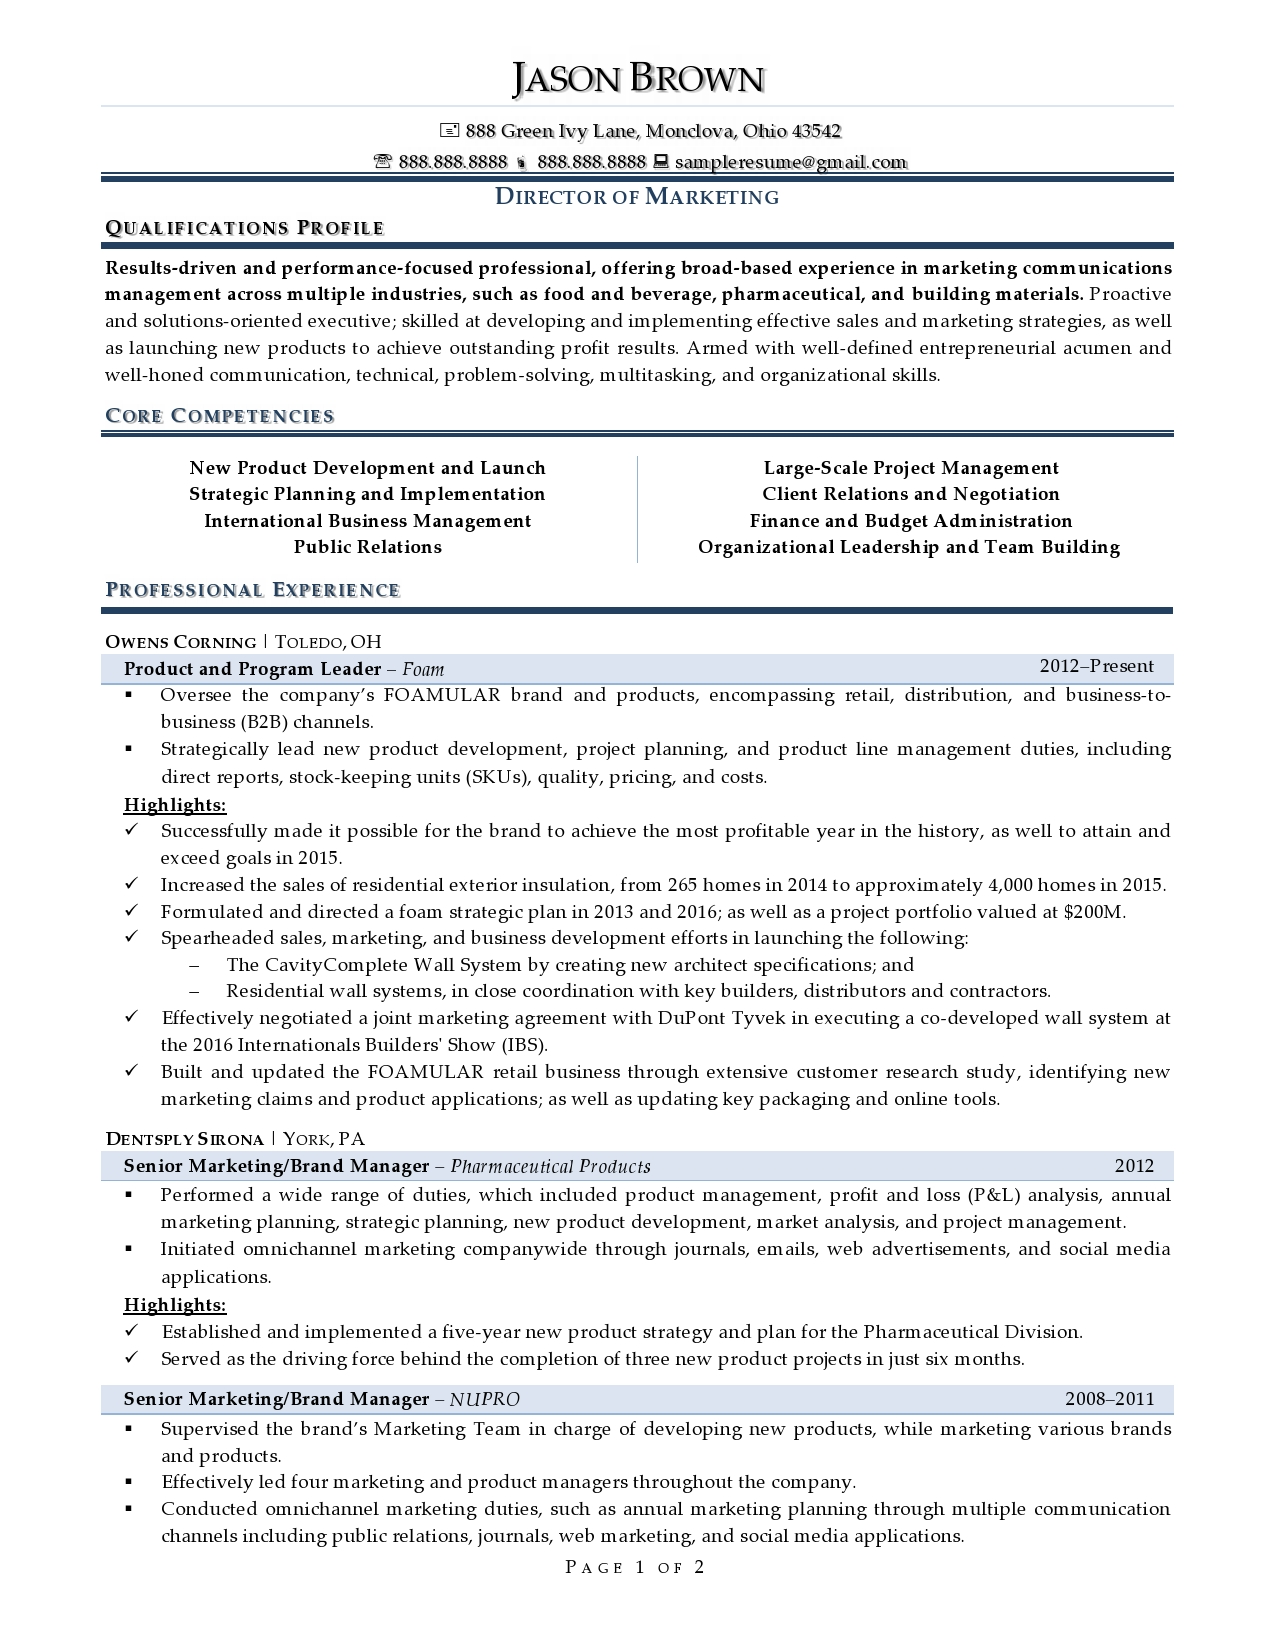 First Page Marketing Director Resume Examples for Applicants